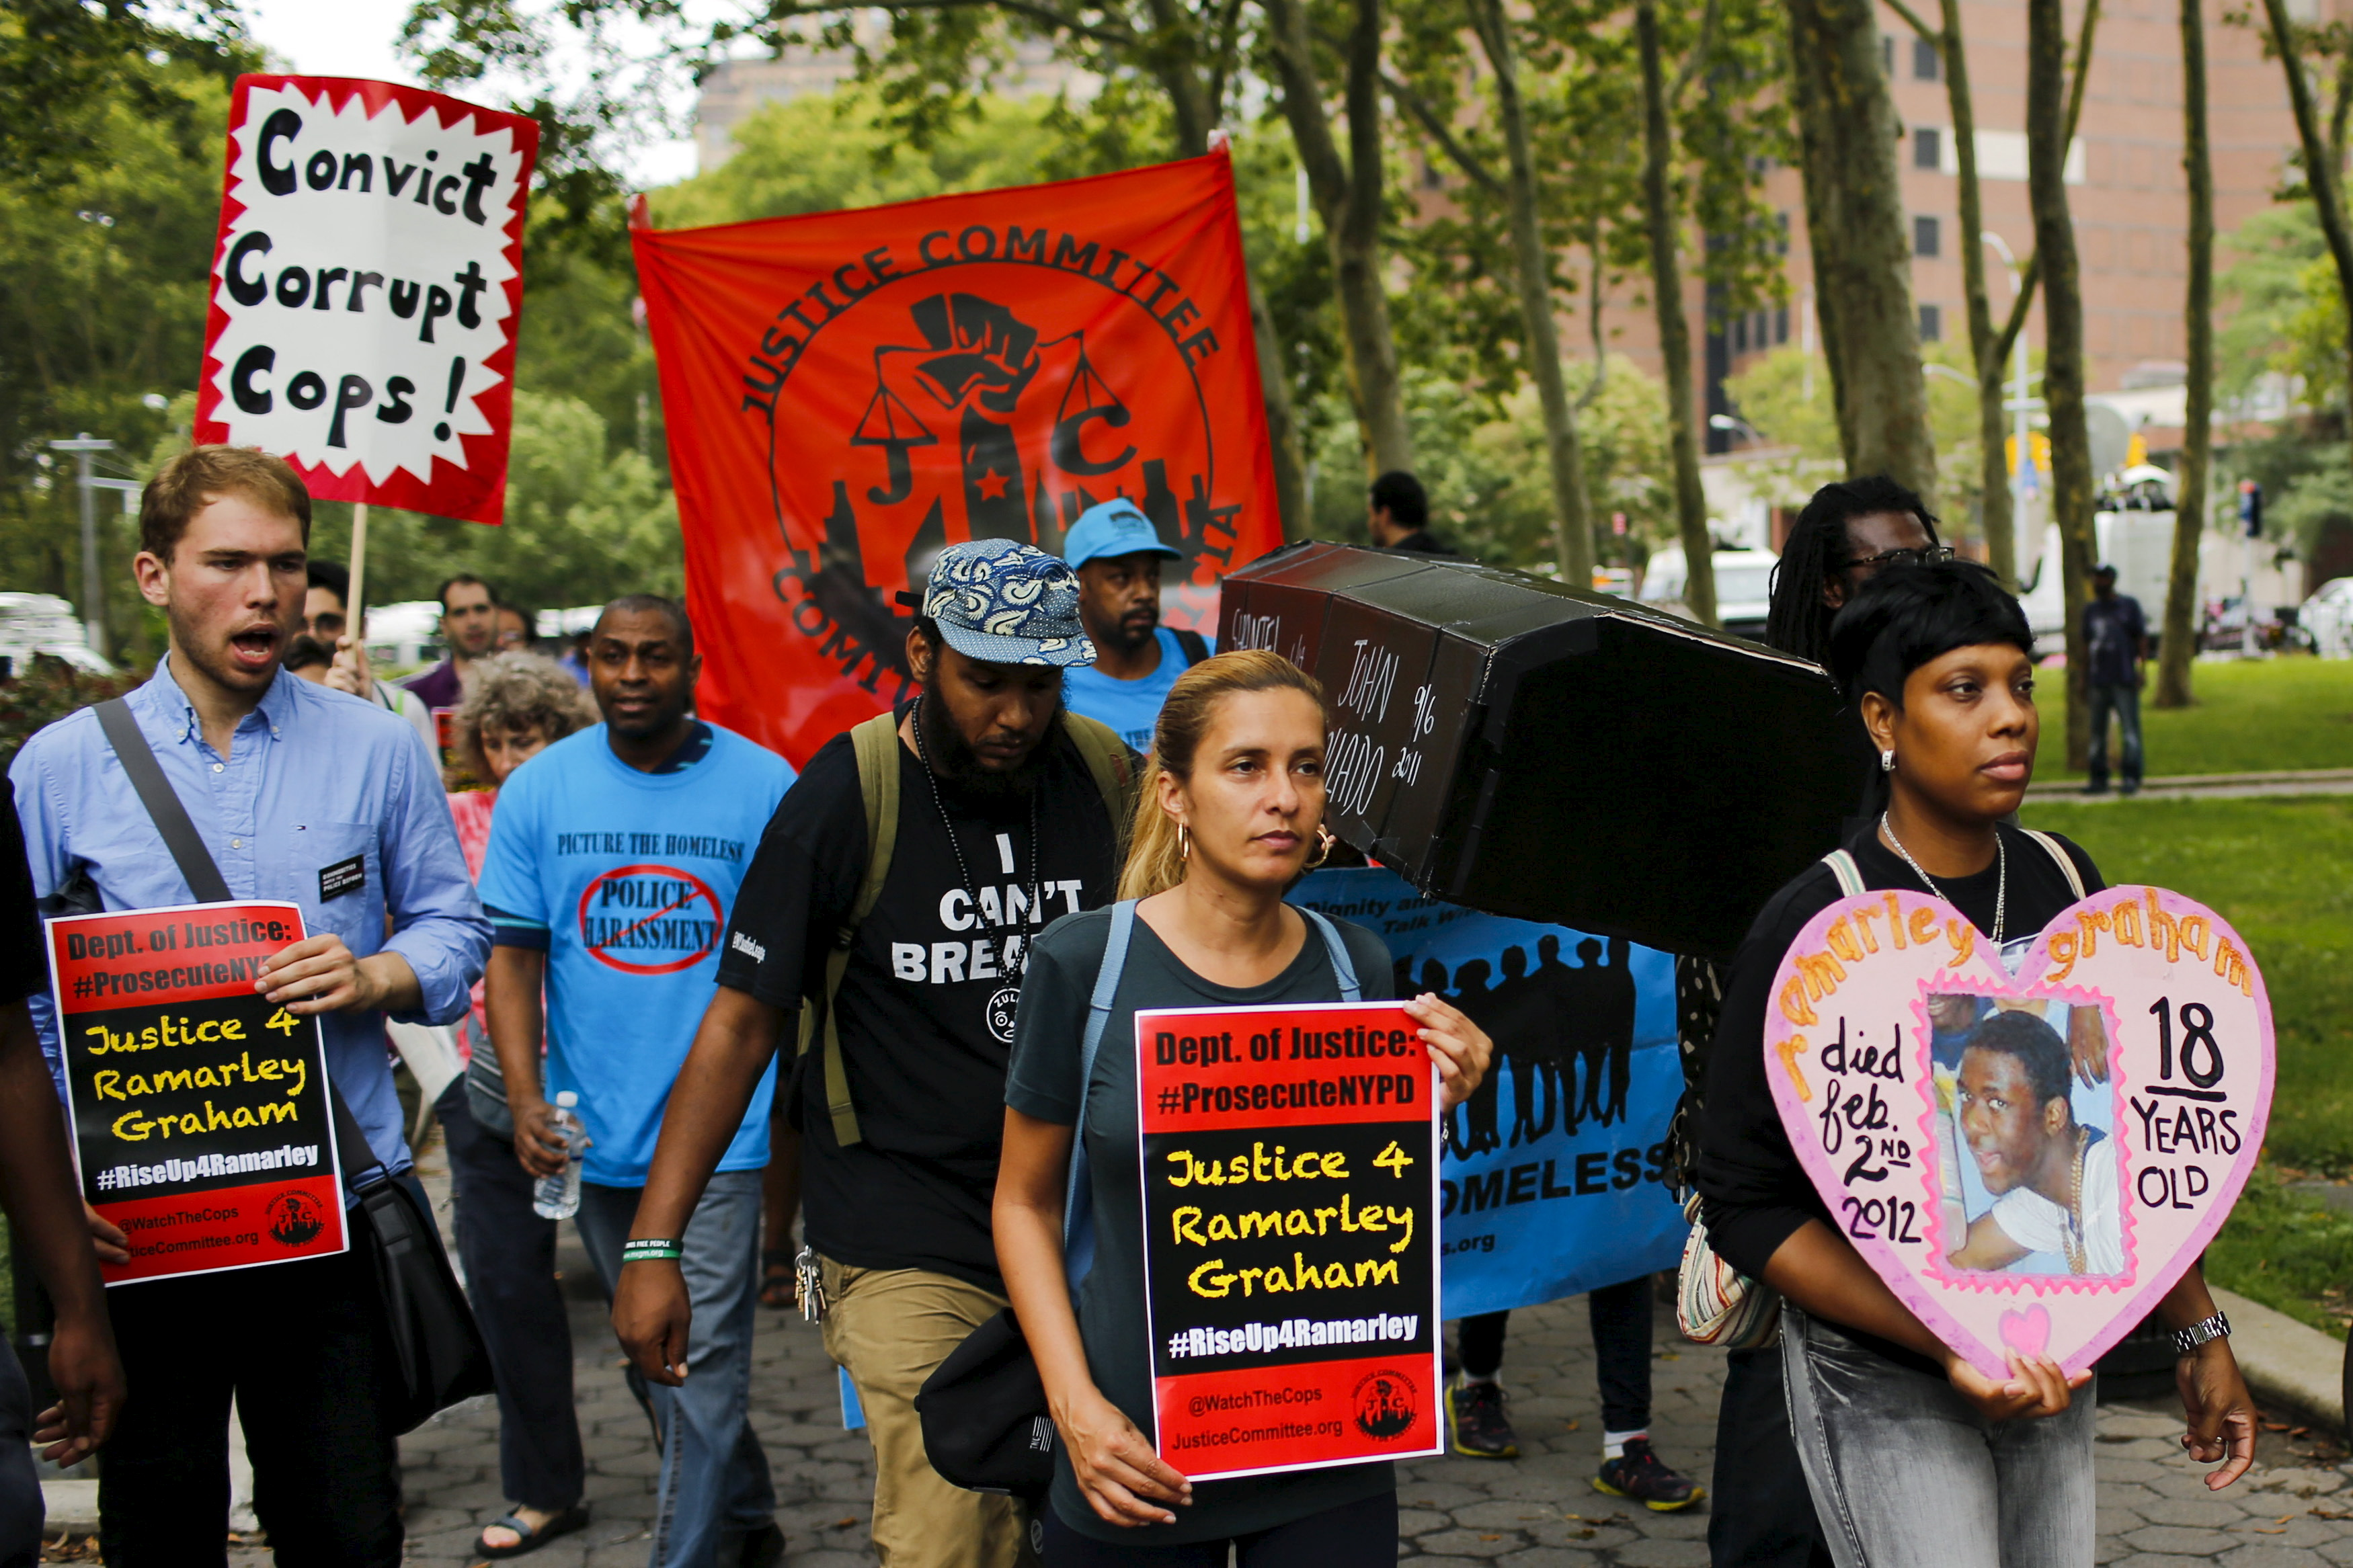 Protesters carry symbolic caskets of people killed by police during a rally for Eric Garner near a Brooklyn court in New York, July 18, 2015. Family and supporters marked the anniversary of the police killing of Eric Garner with rallies and vigils demanding police reforms and justice in the controversial case. Photo by Eduardo Munoz/Reuters